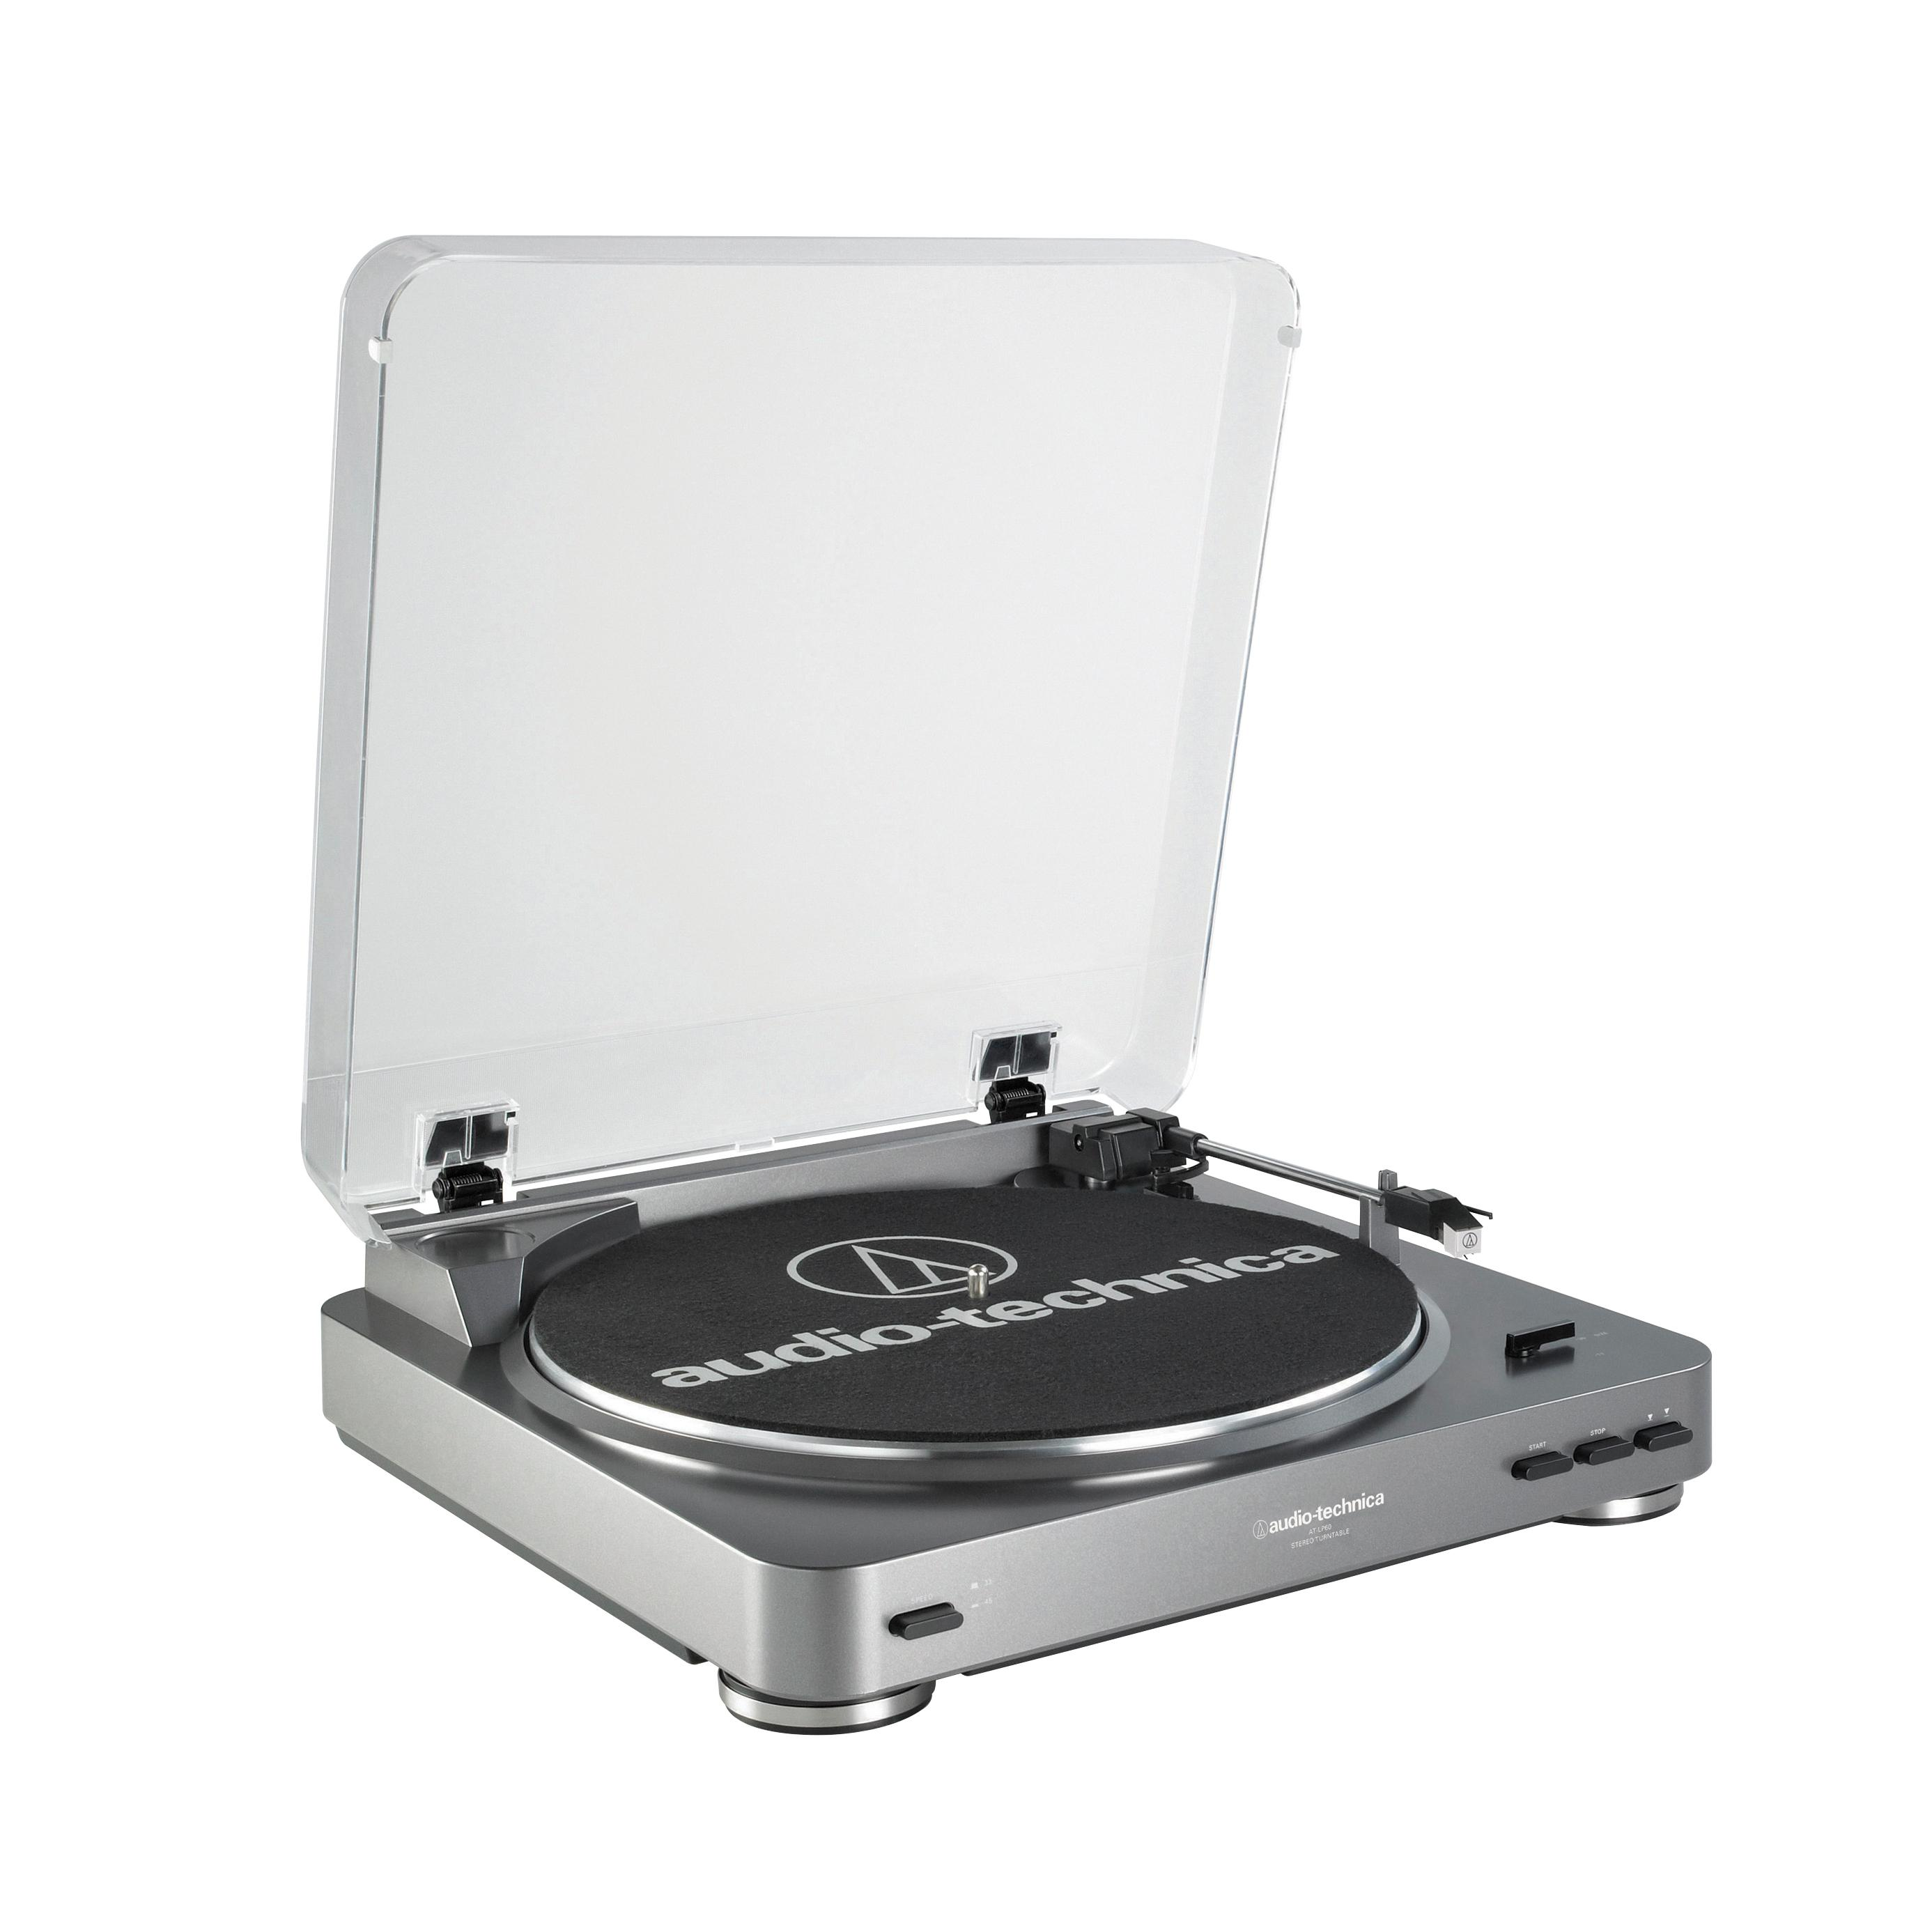 Audio Technica AT-LP60 Fully Automatic Belt Driven Turntable-Black (Certified Refurbished) by Audio-Technica